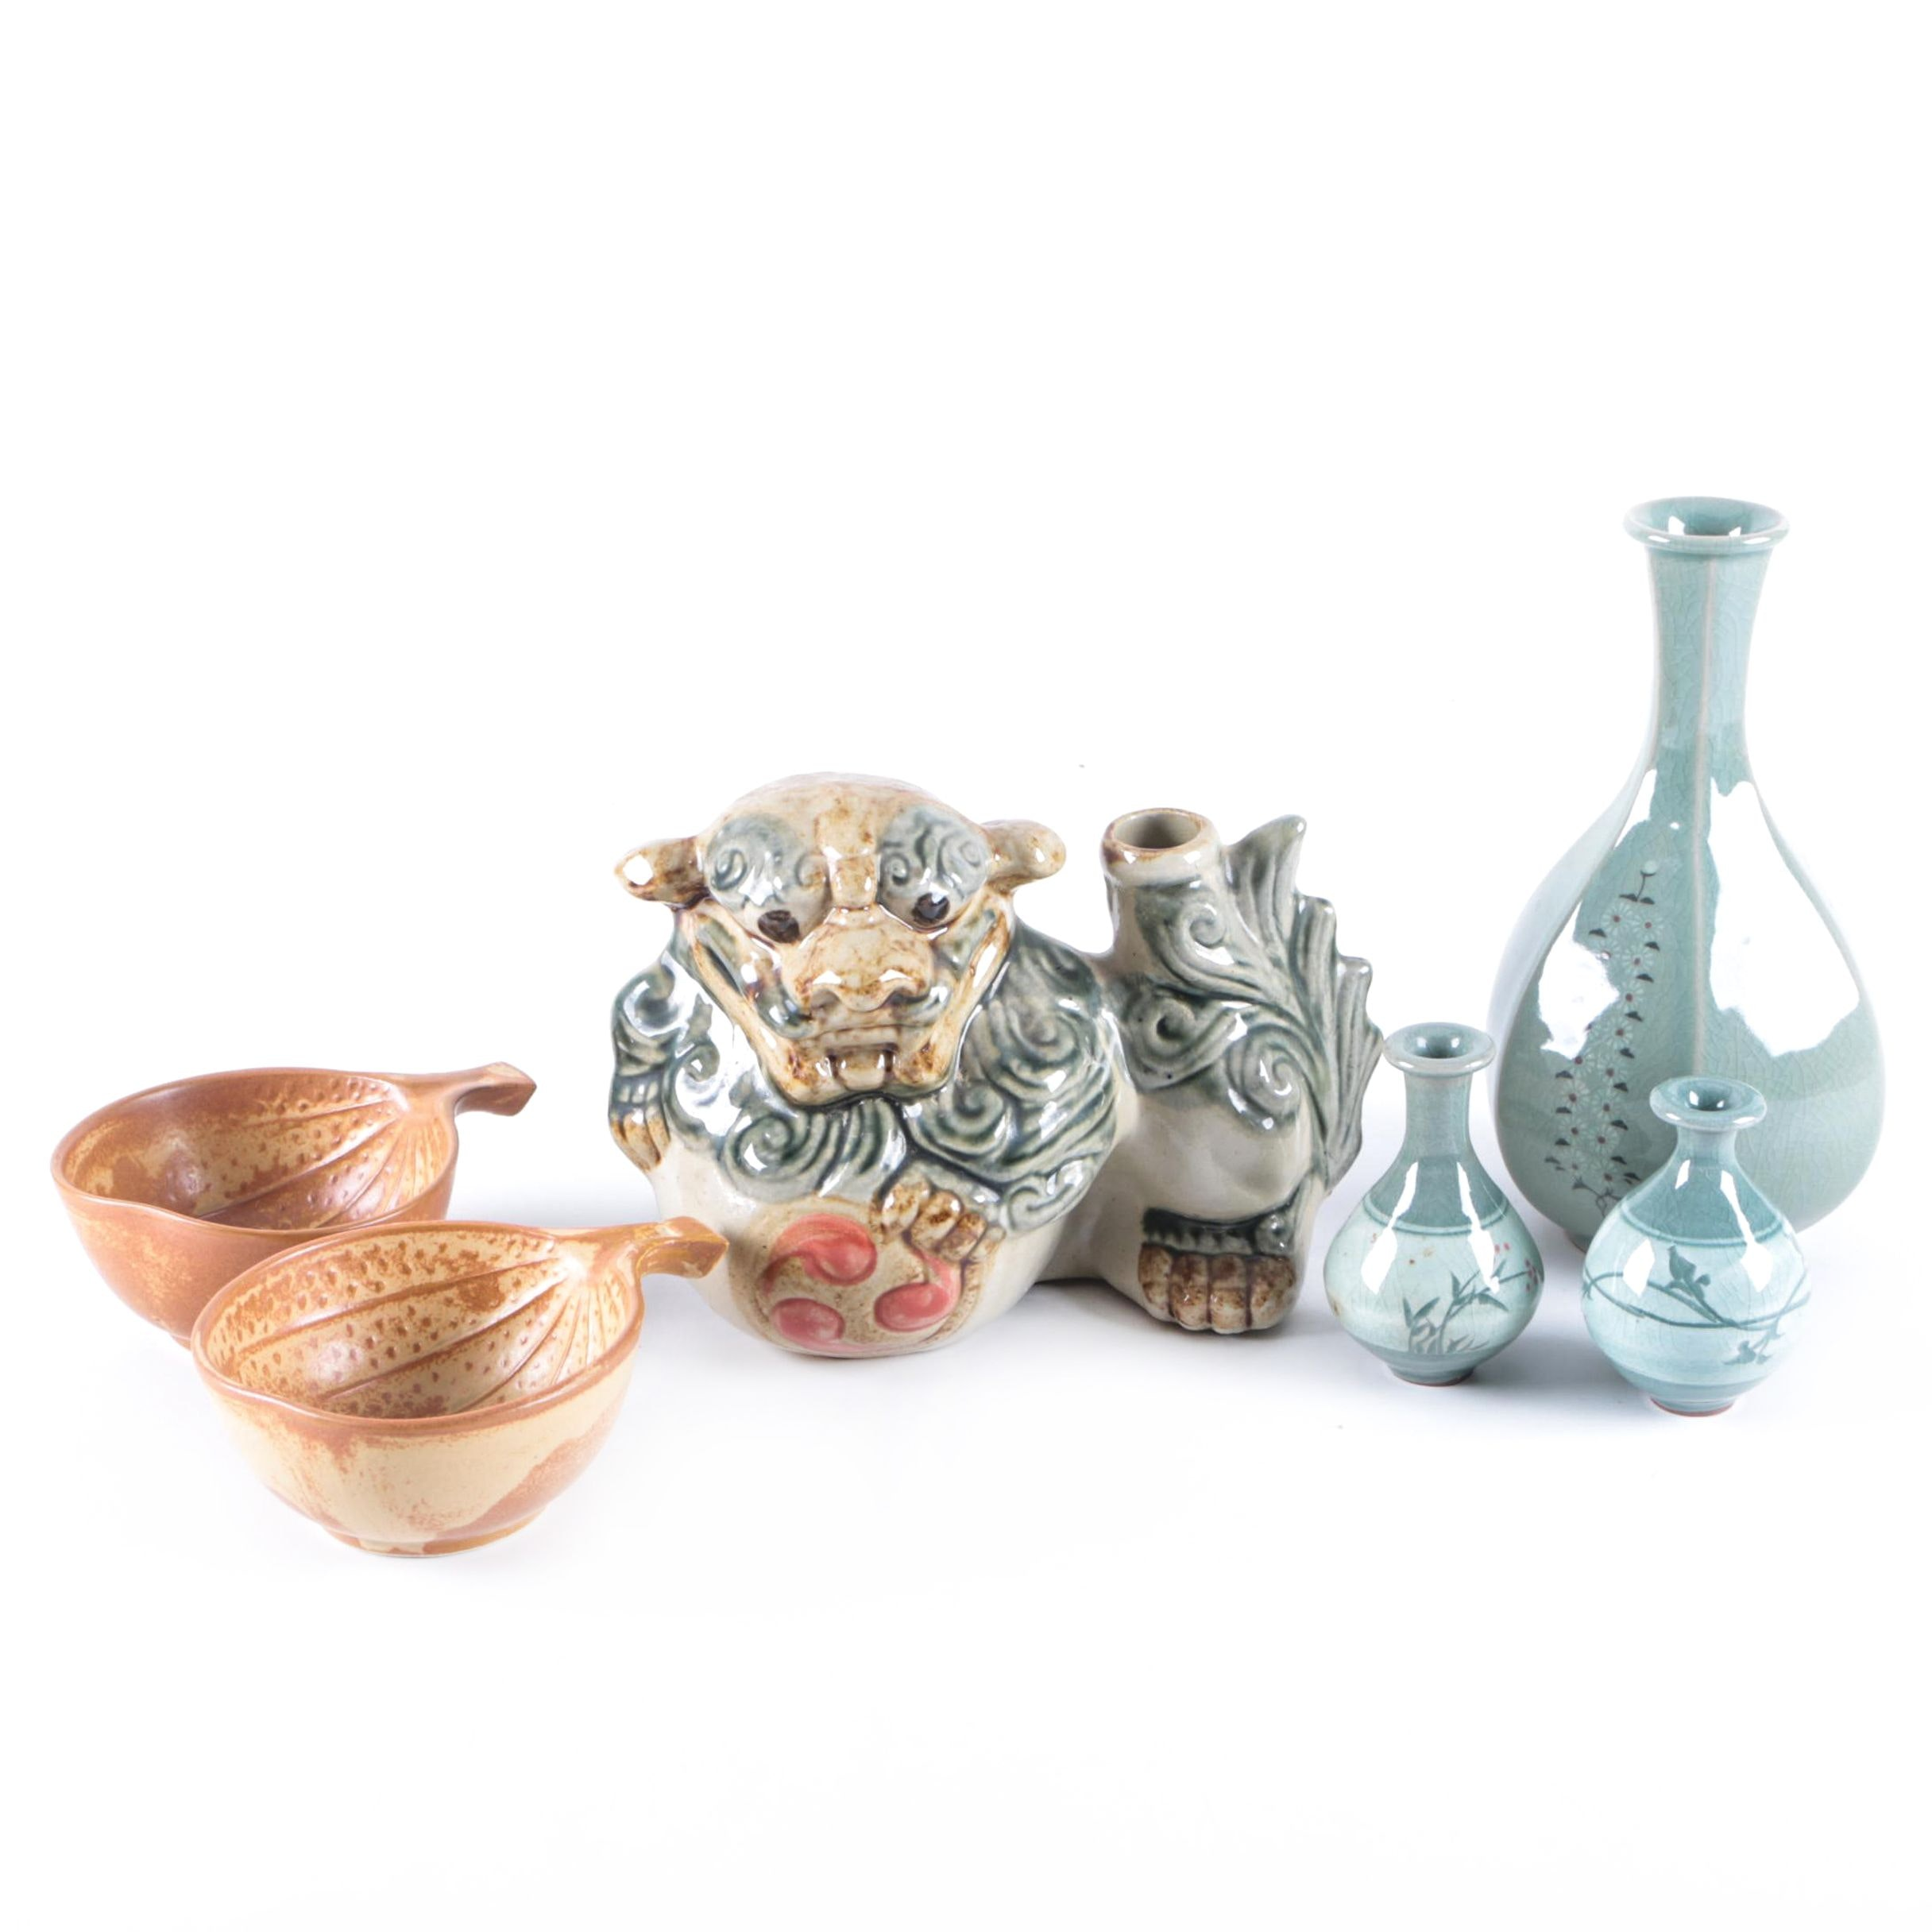 East Asian Bowls, Vases, and a Dragon Bottle